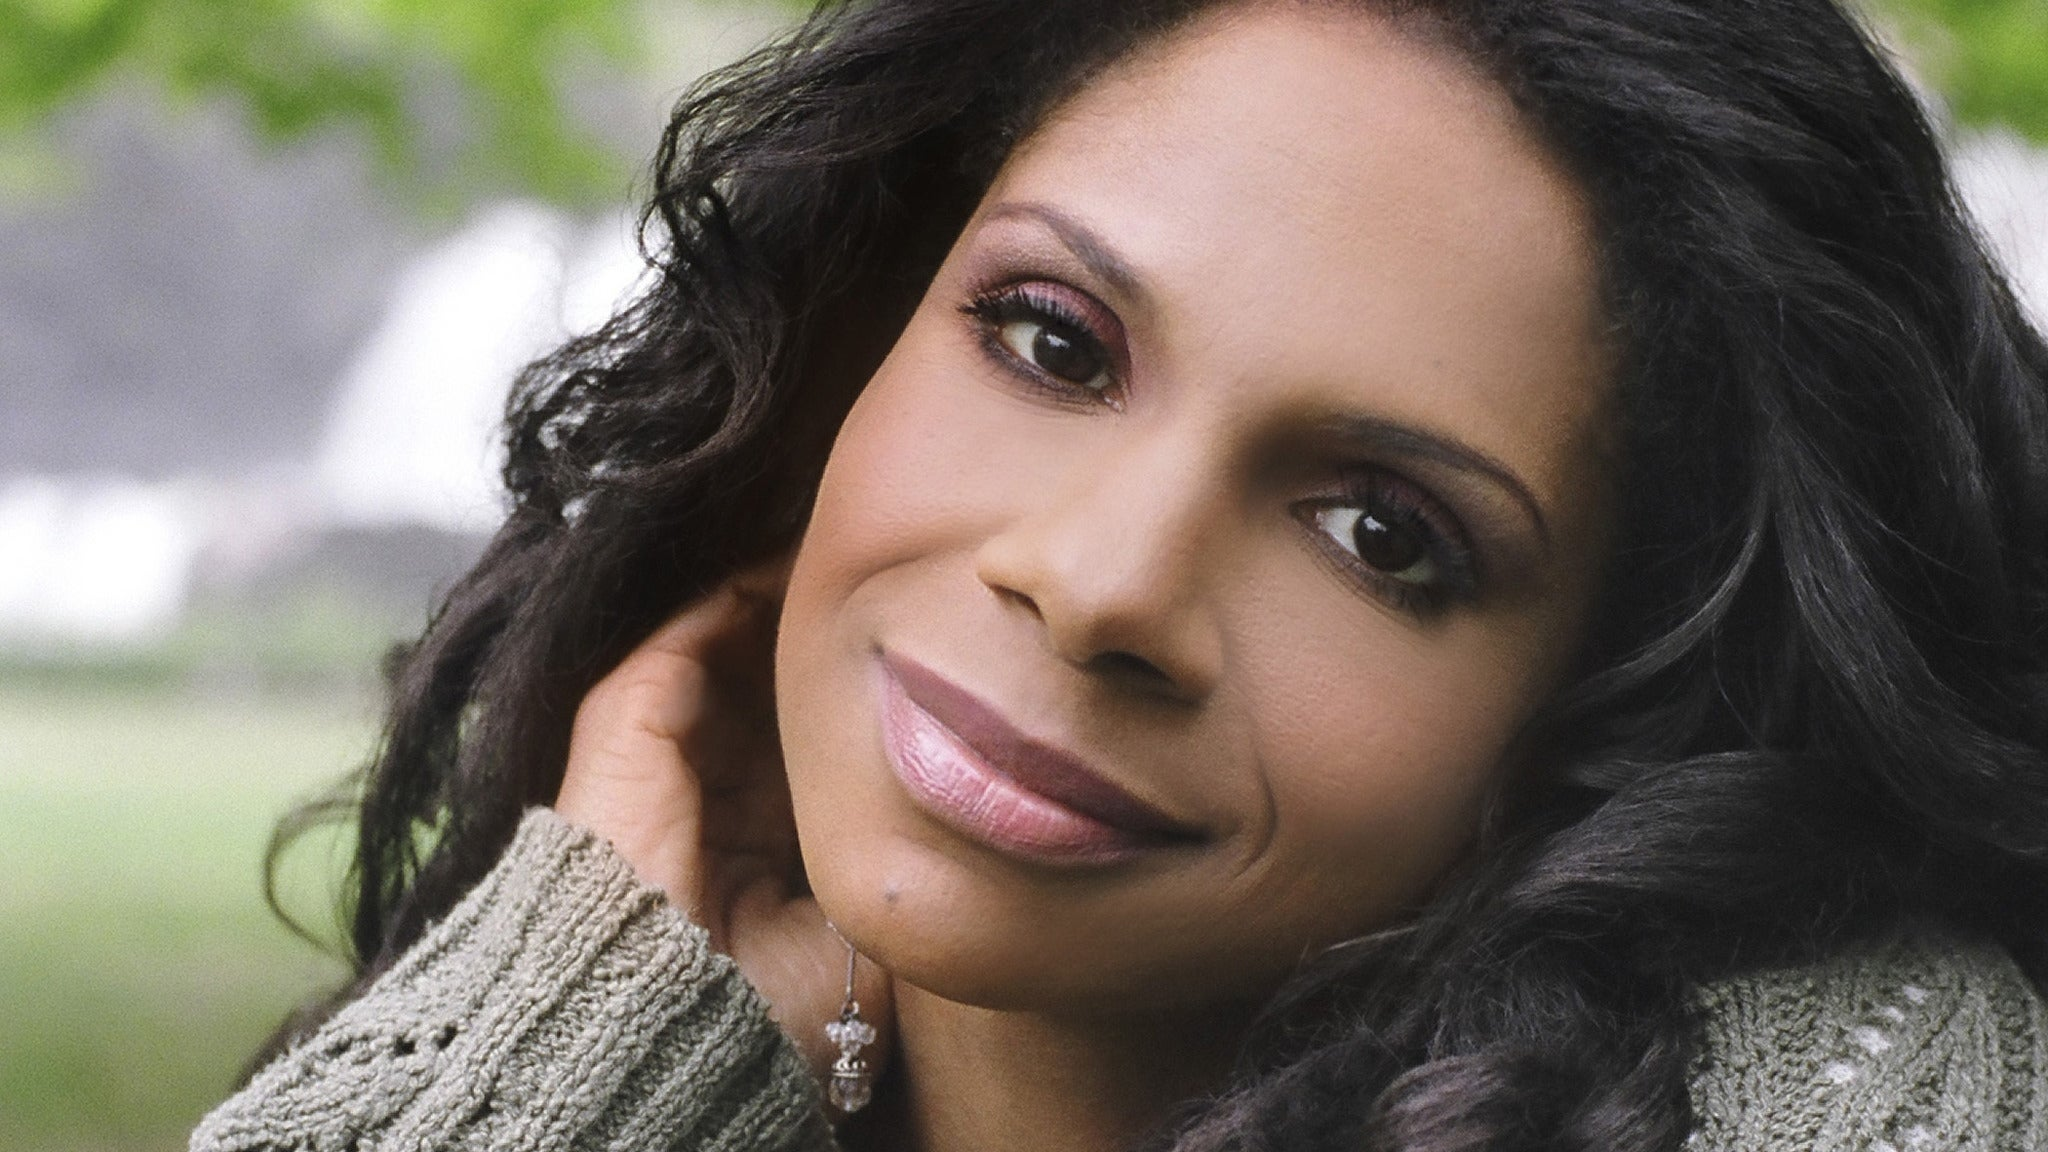 Audra McDonald at Renee and Henry Segerstrom Concert Hall - Costa Mesa, CA 92626